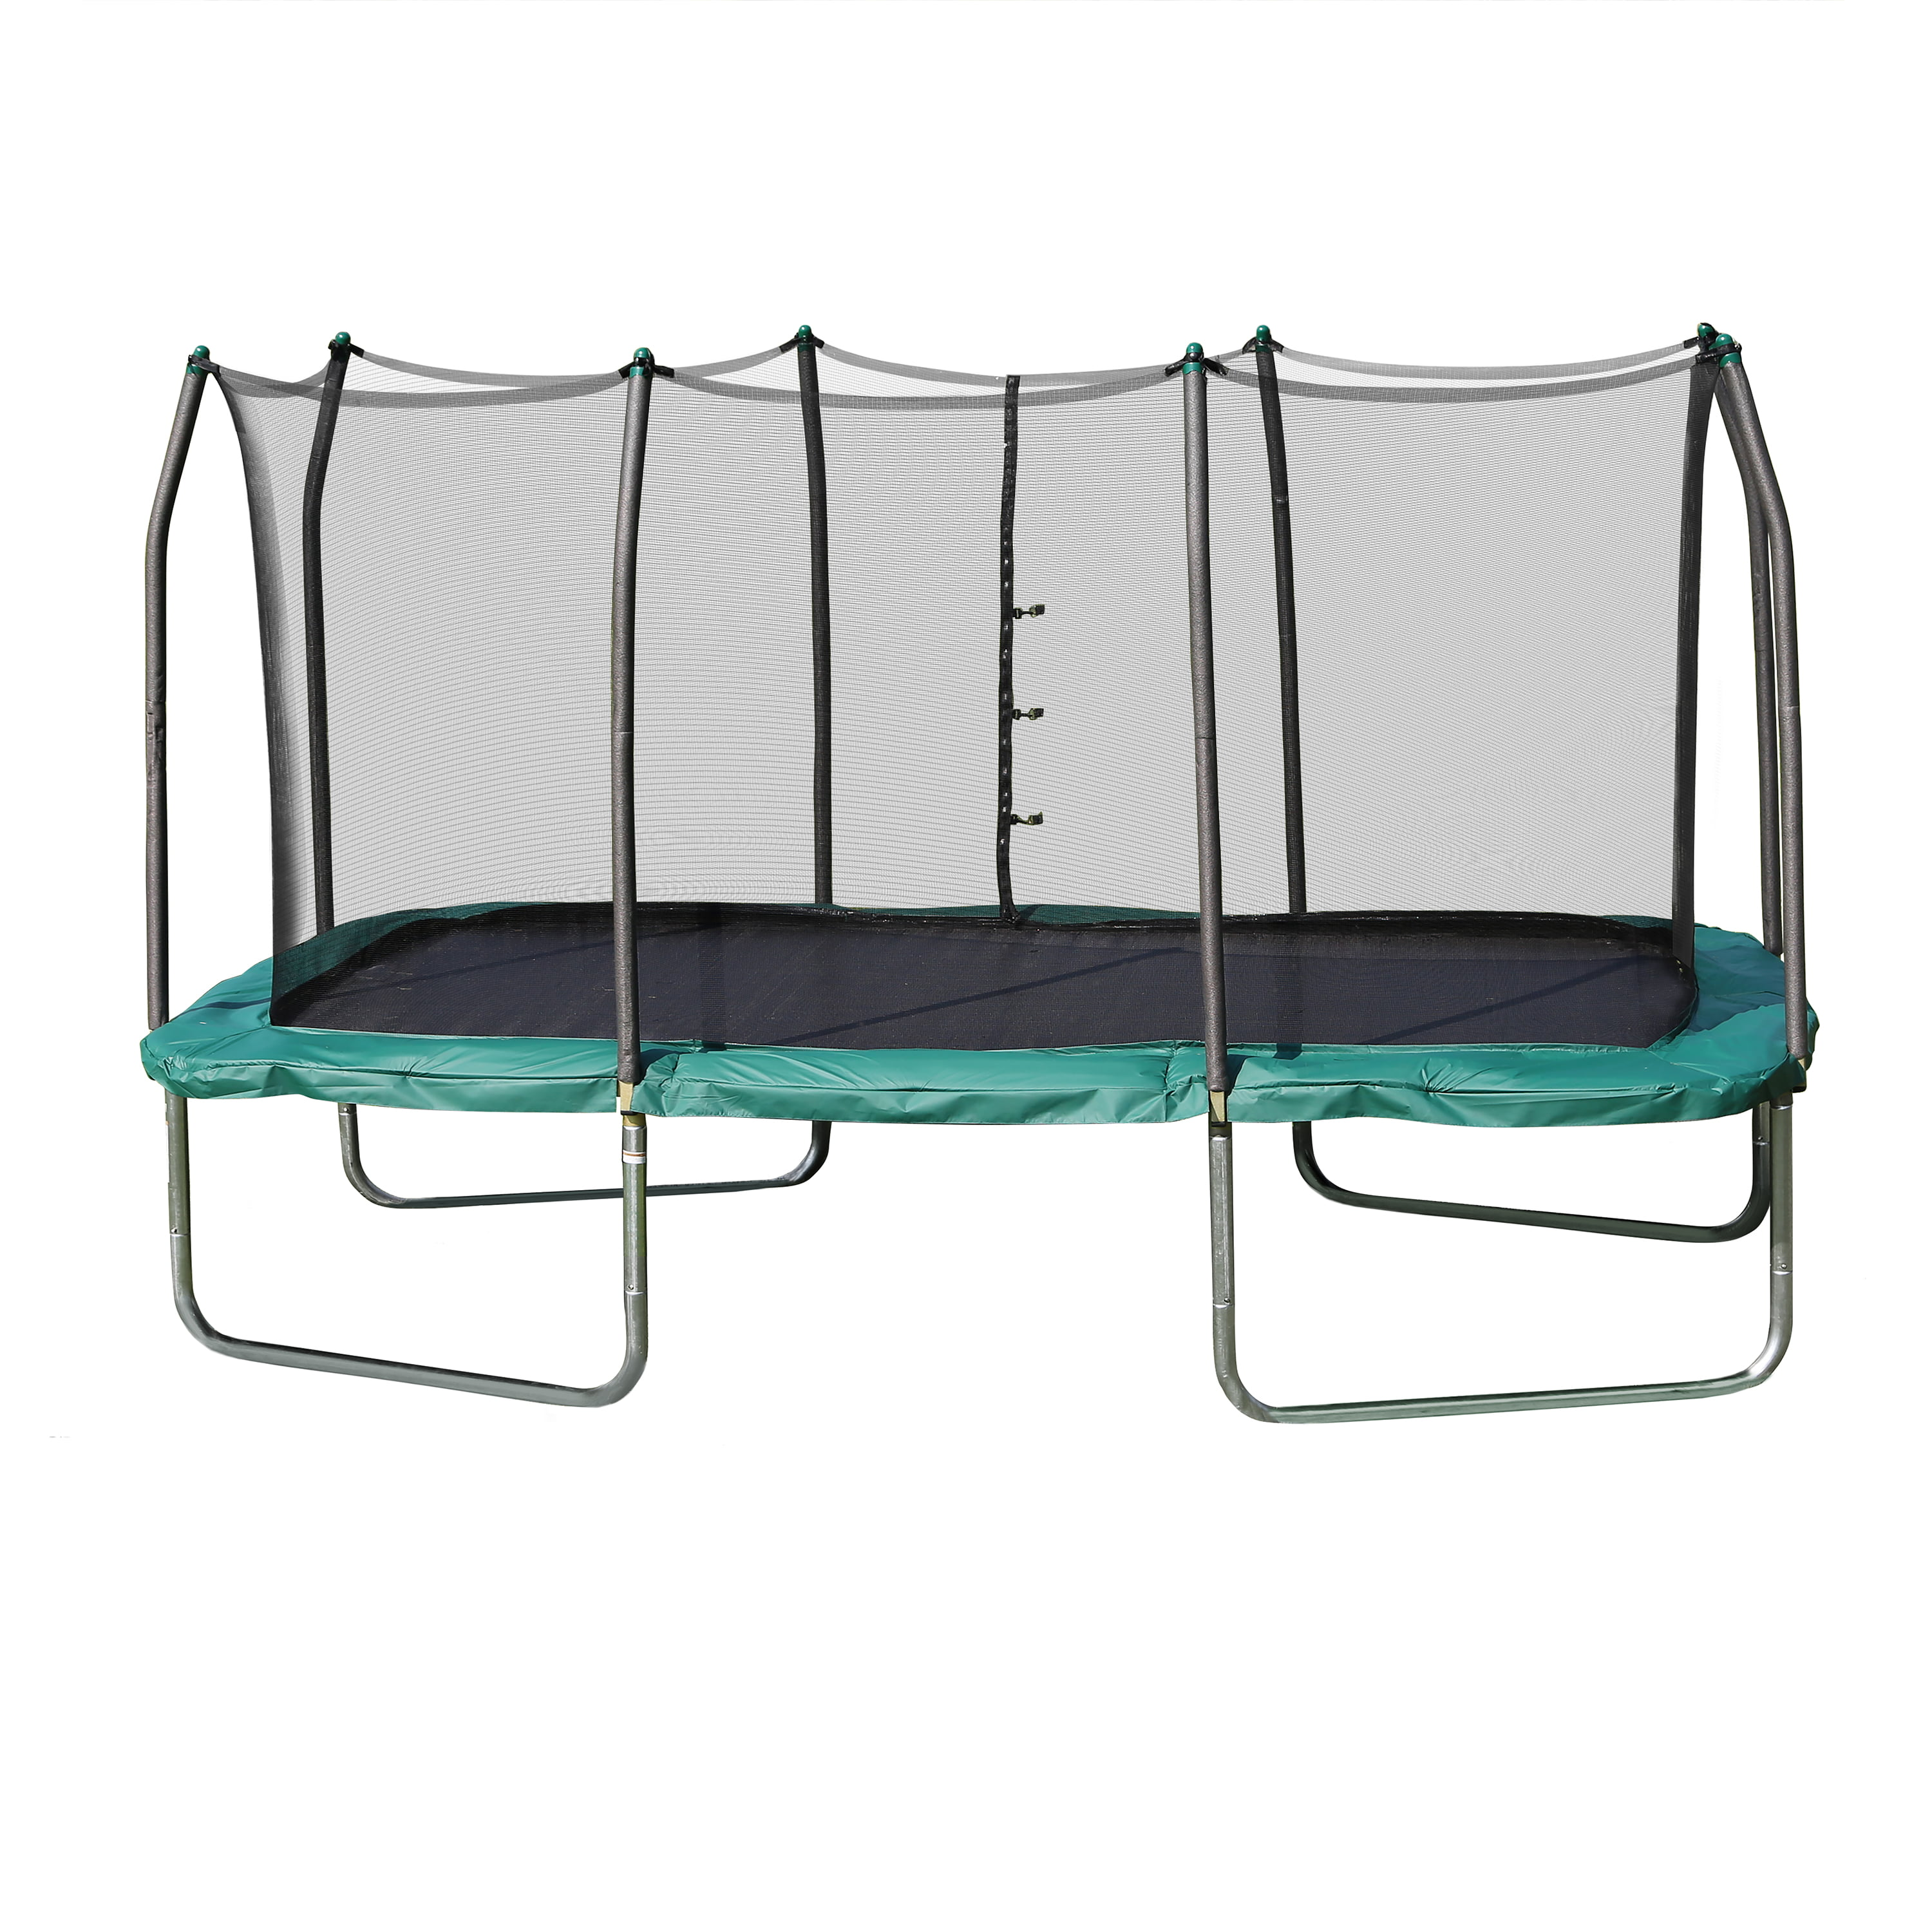 Skywalker Trampolines Rectangle 8 X 14 Foot Trampoline Green Box 1 Of 2 Com